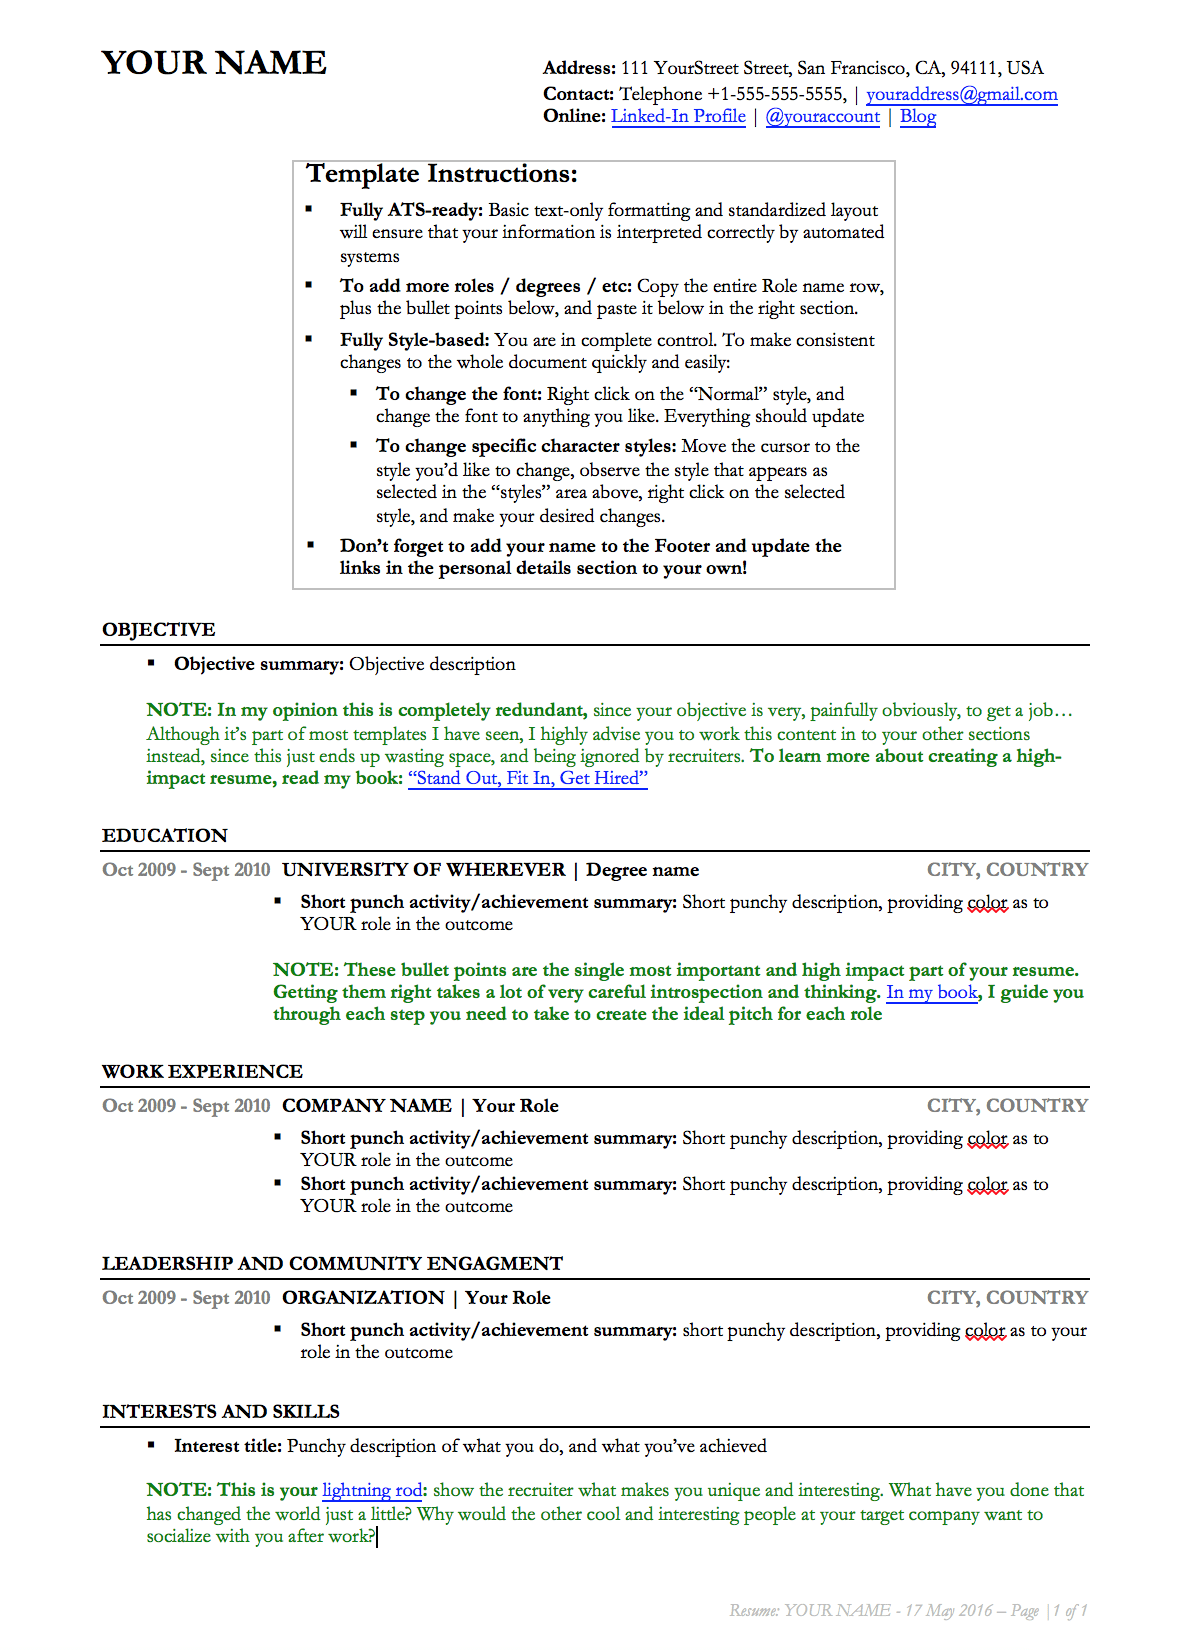 Download And Use This Resume Template (Link)